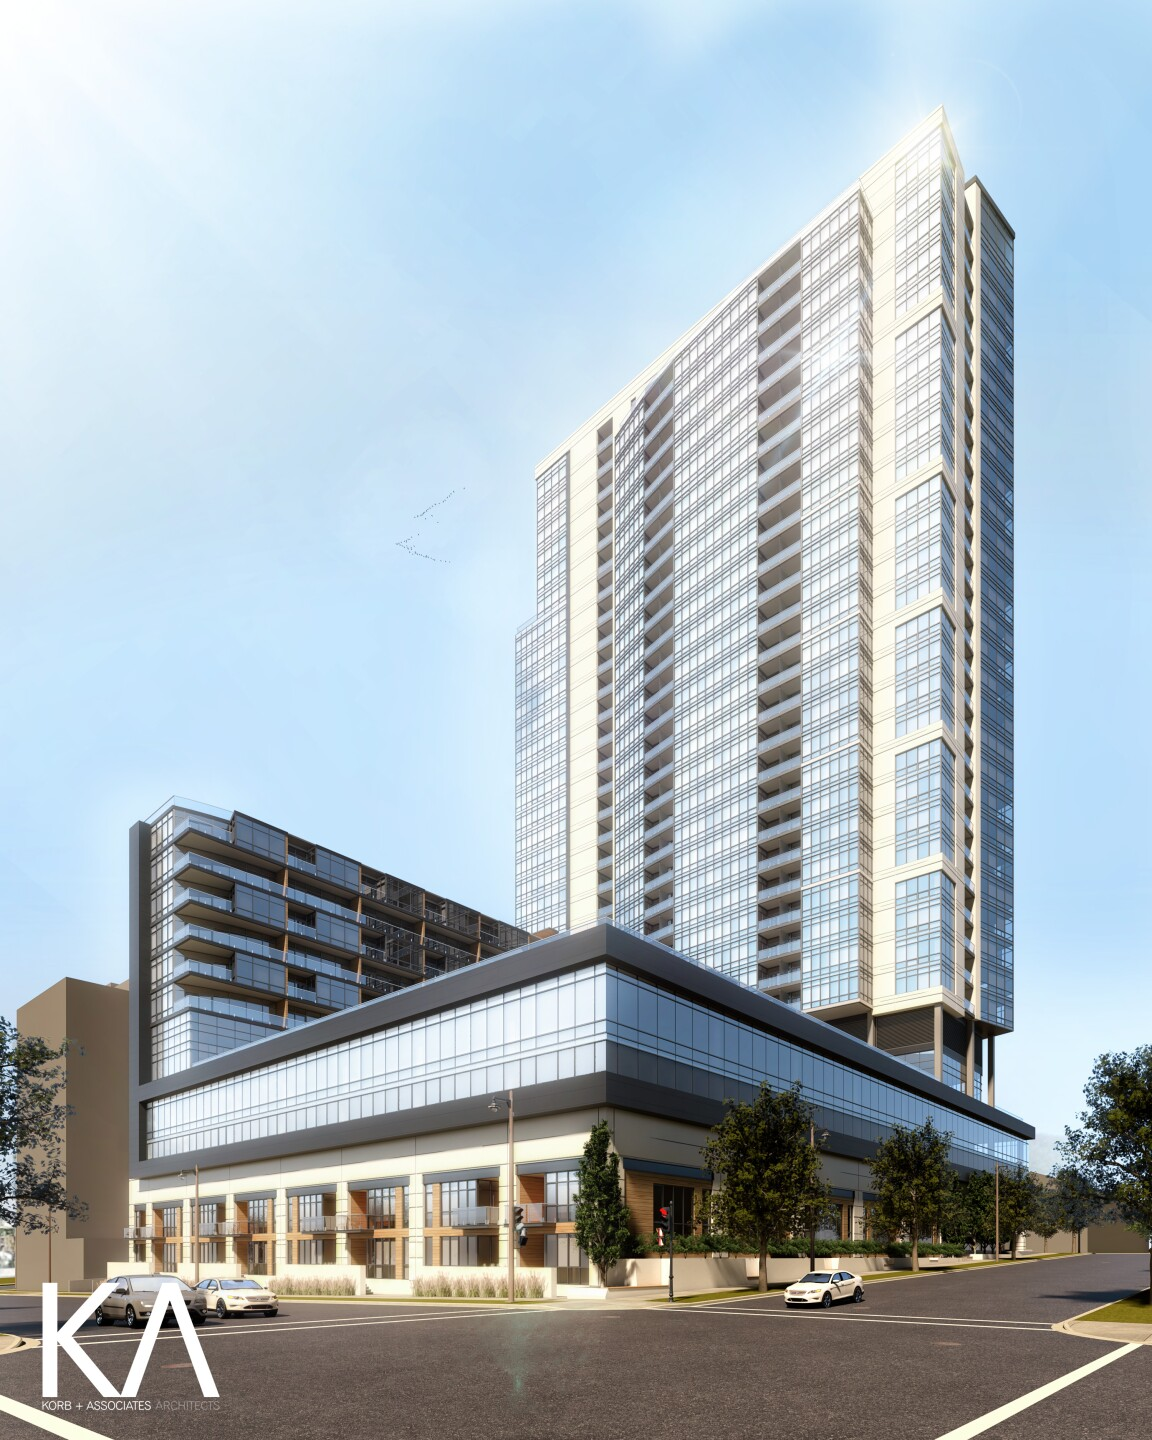 32-story Affordable Housing High Rise Proposed For